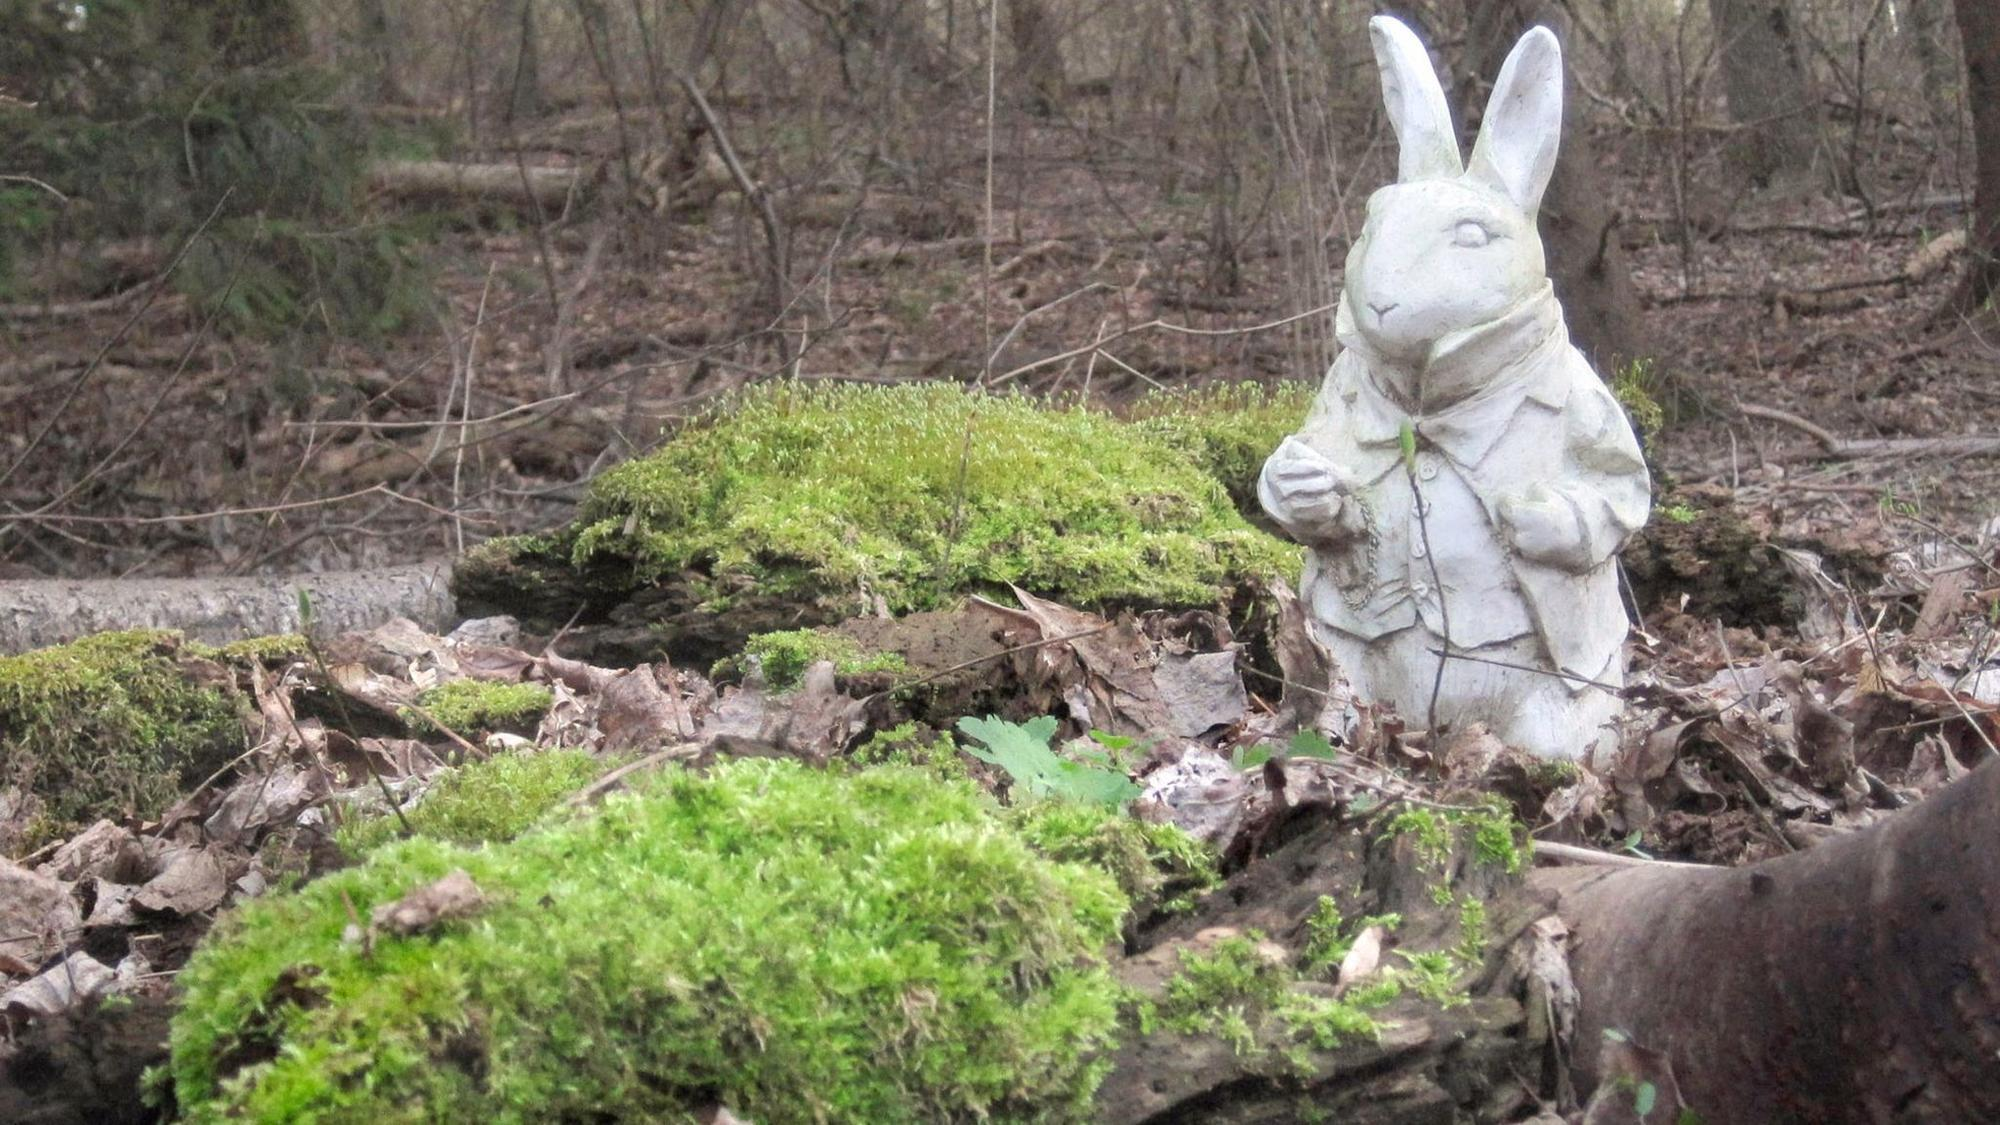 Gardening: Time To Protect Garden Statuary, Pottery And Wood Furniture    The Morning Call